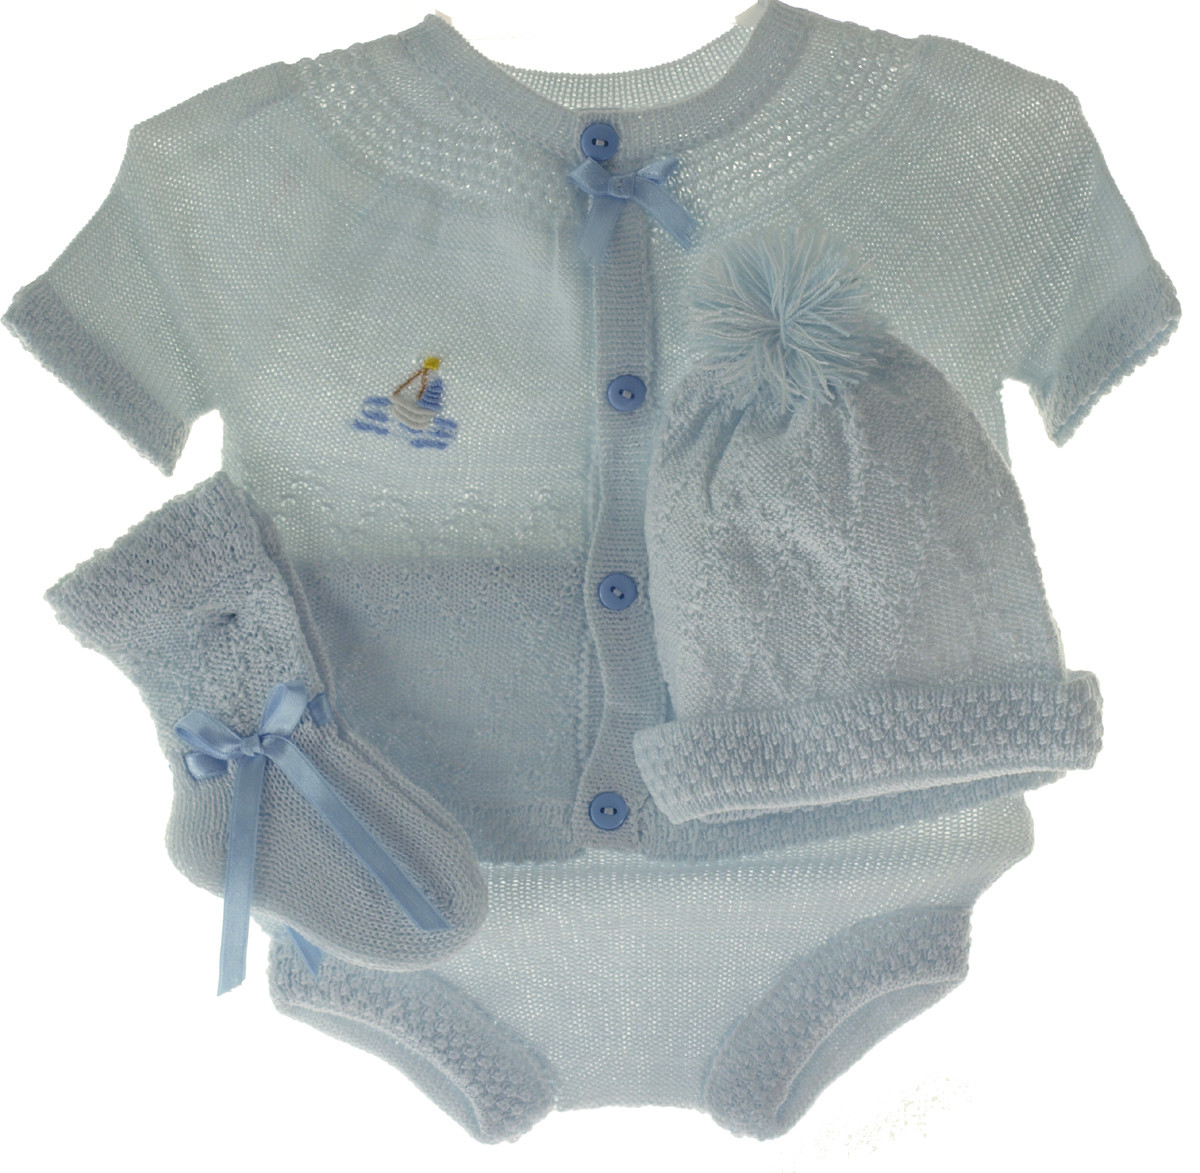 2166d8148 Newborn Baby Boys Blue Knit Take Home Outfit Hat & Booties Set ...